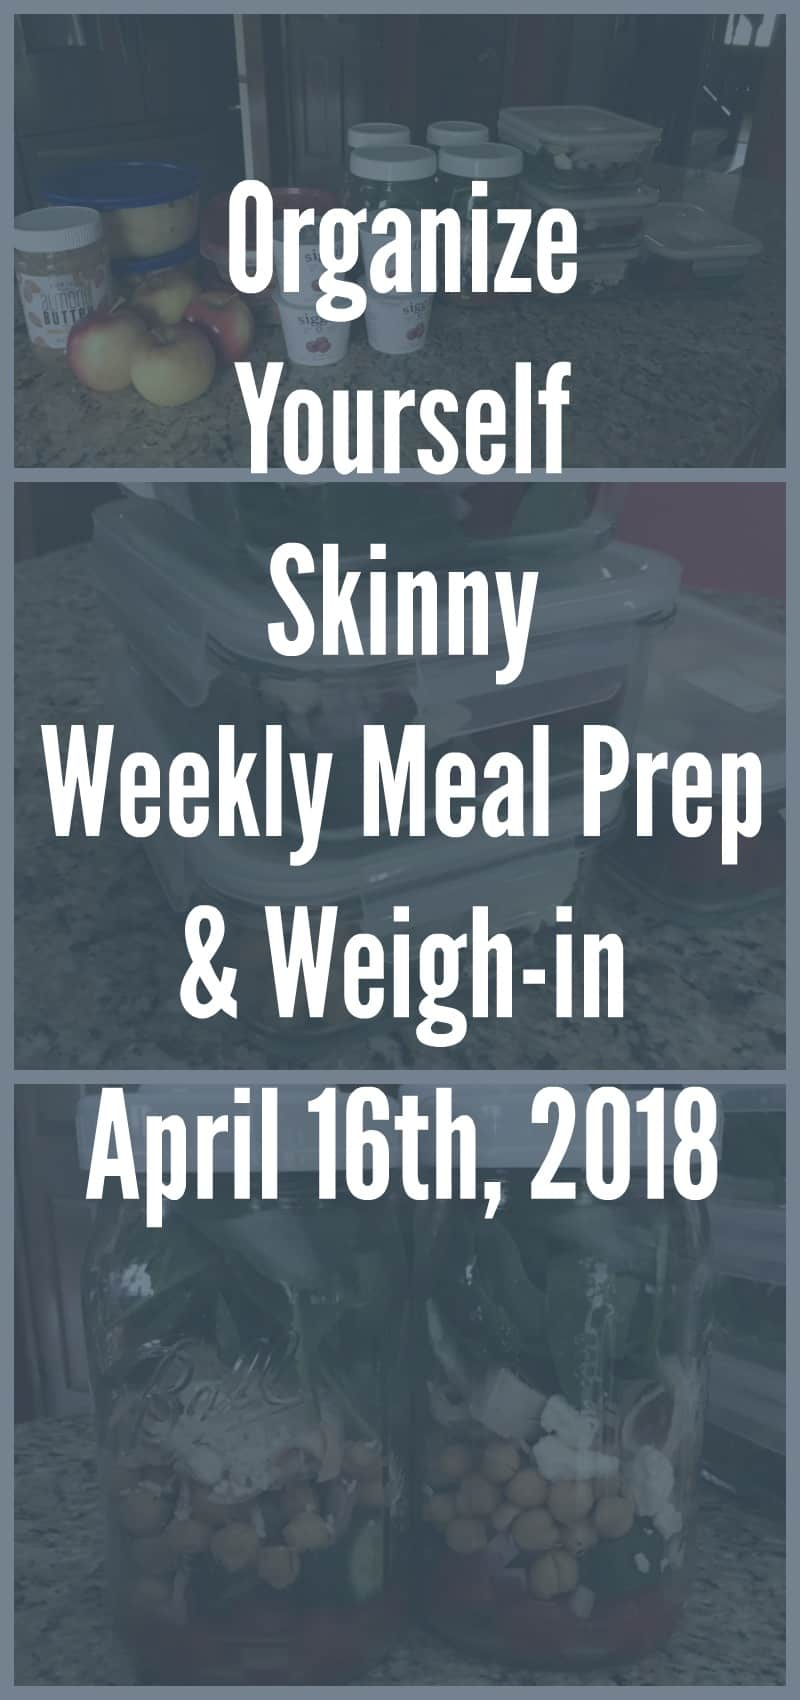 Weekly Meal prep and Weigh-in